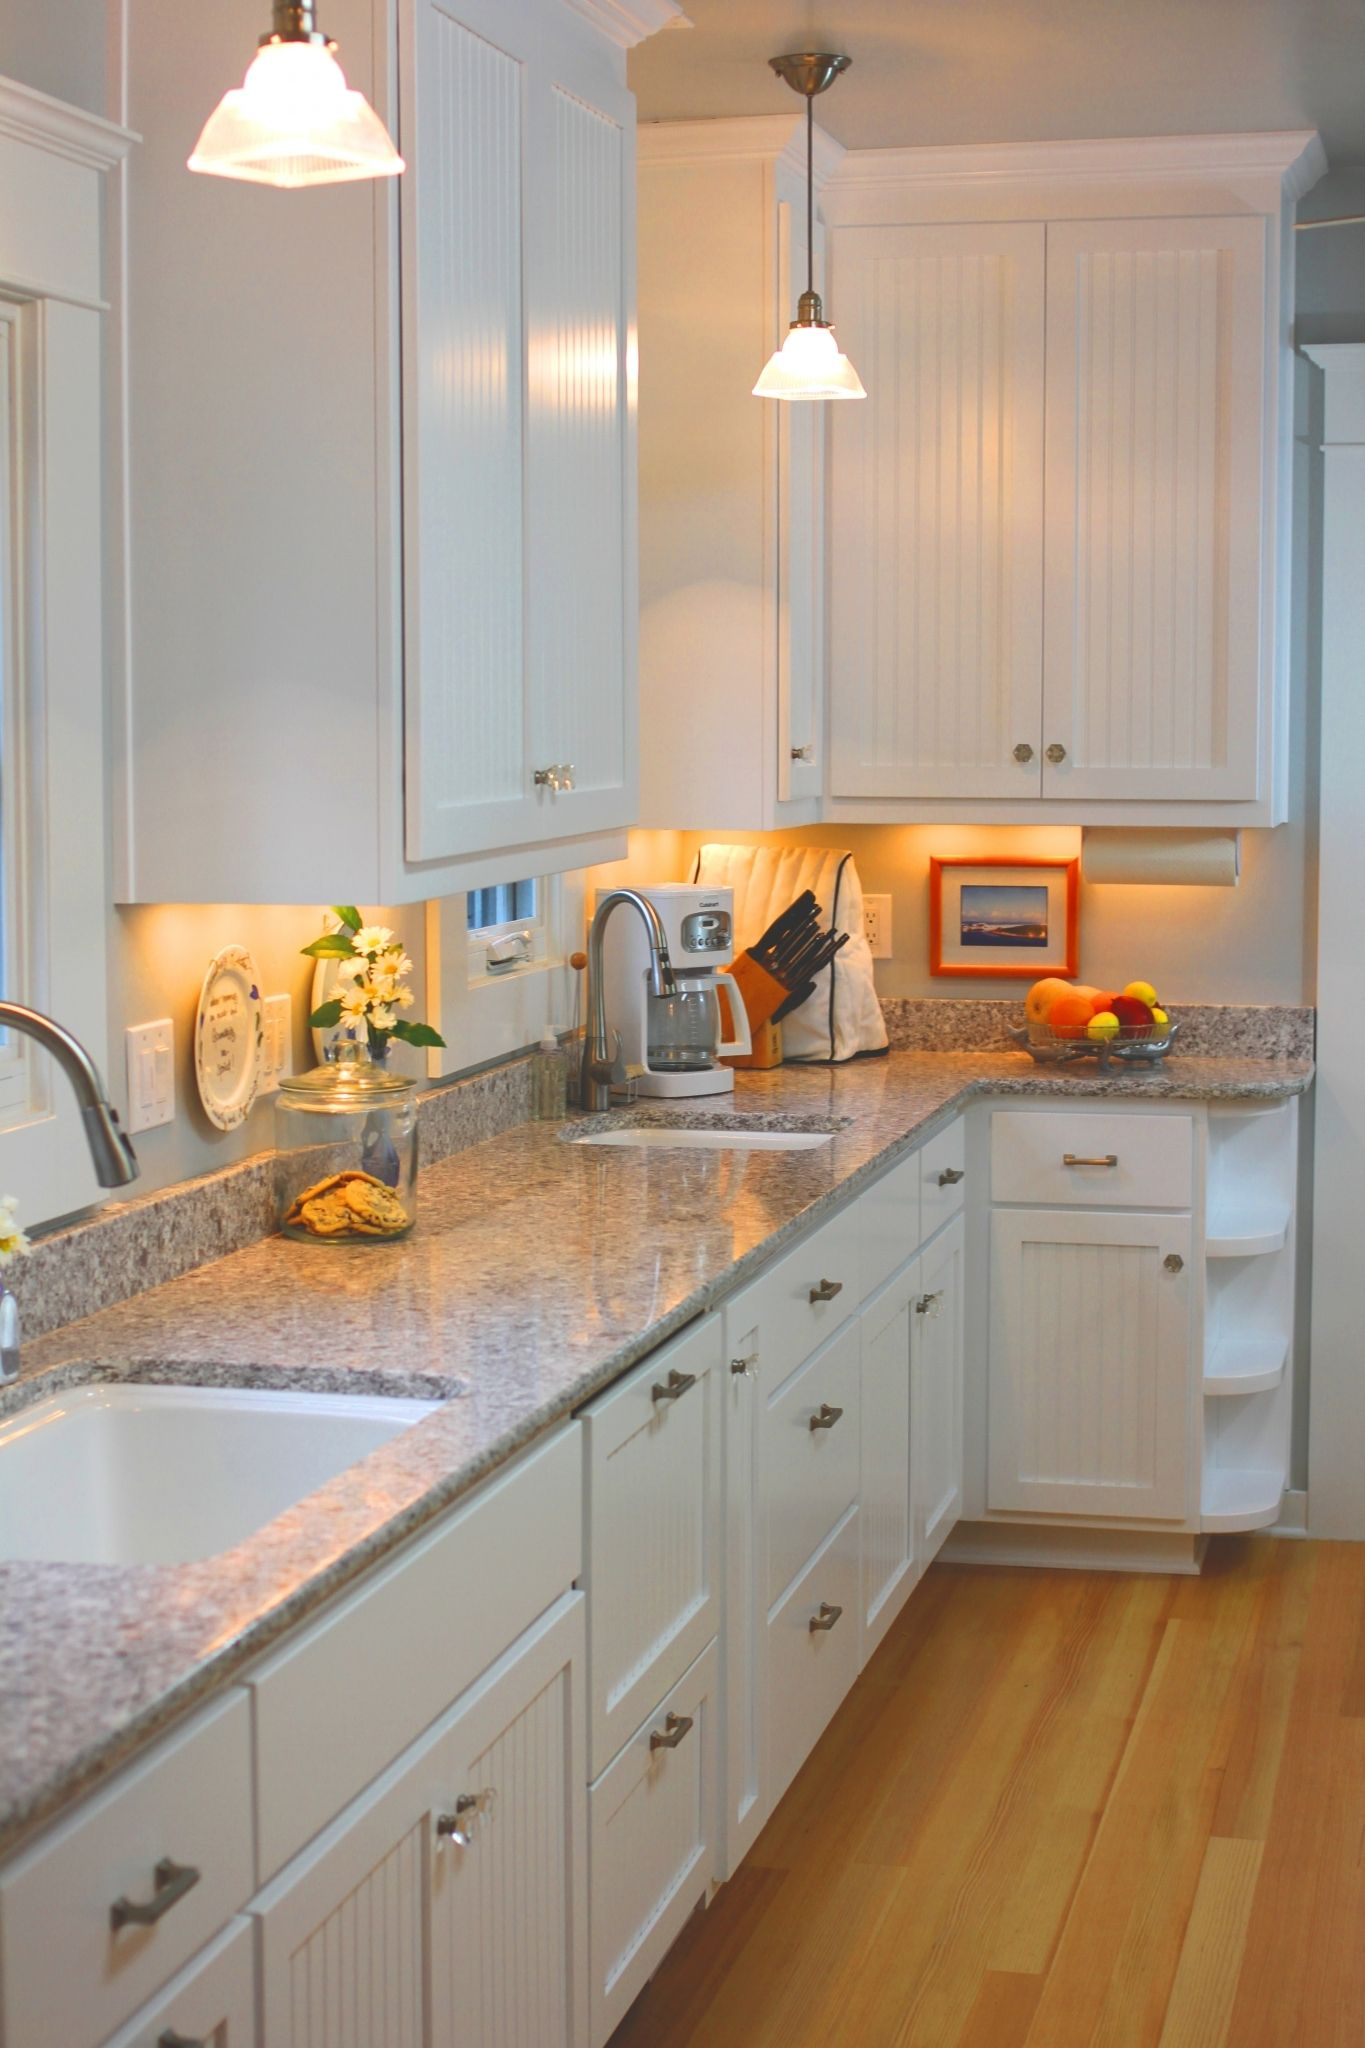 Foil Kitchen Cabinet Doors  Small Kitchen Remodel Ideas On A Amazing Cheap Kitchen Remodel Ideas Inspiration Design